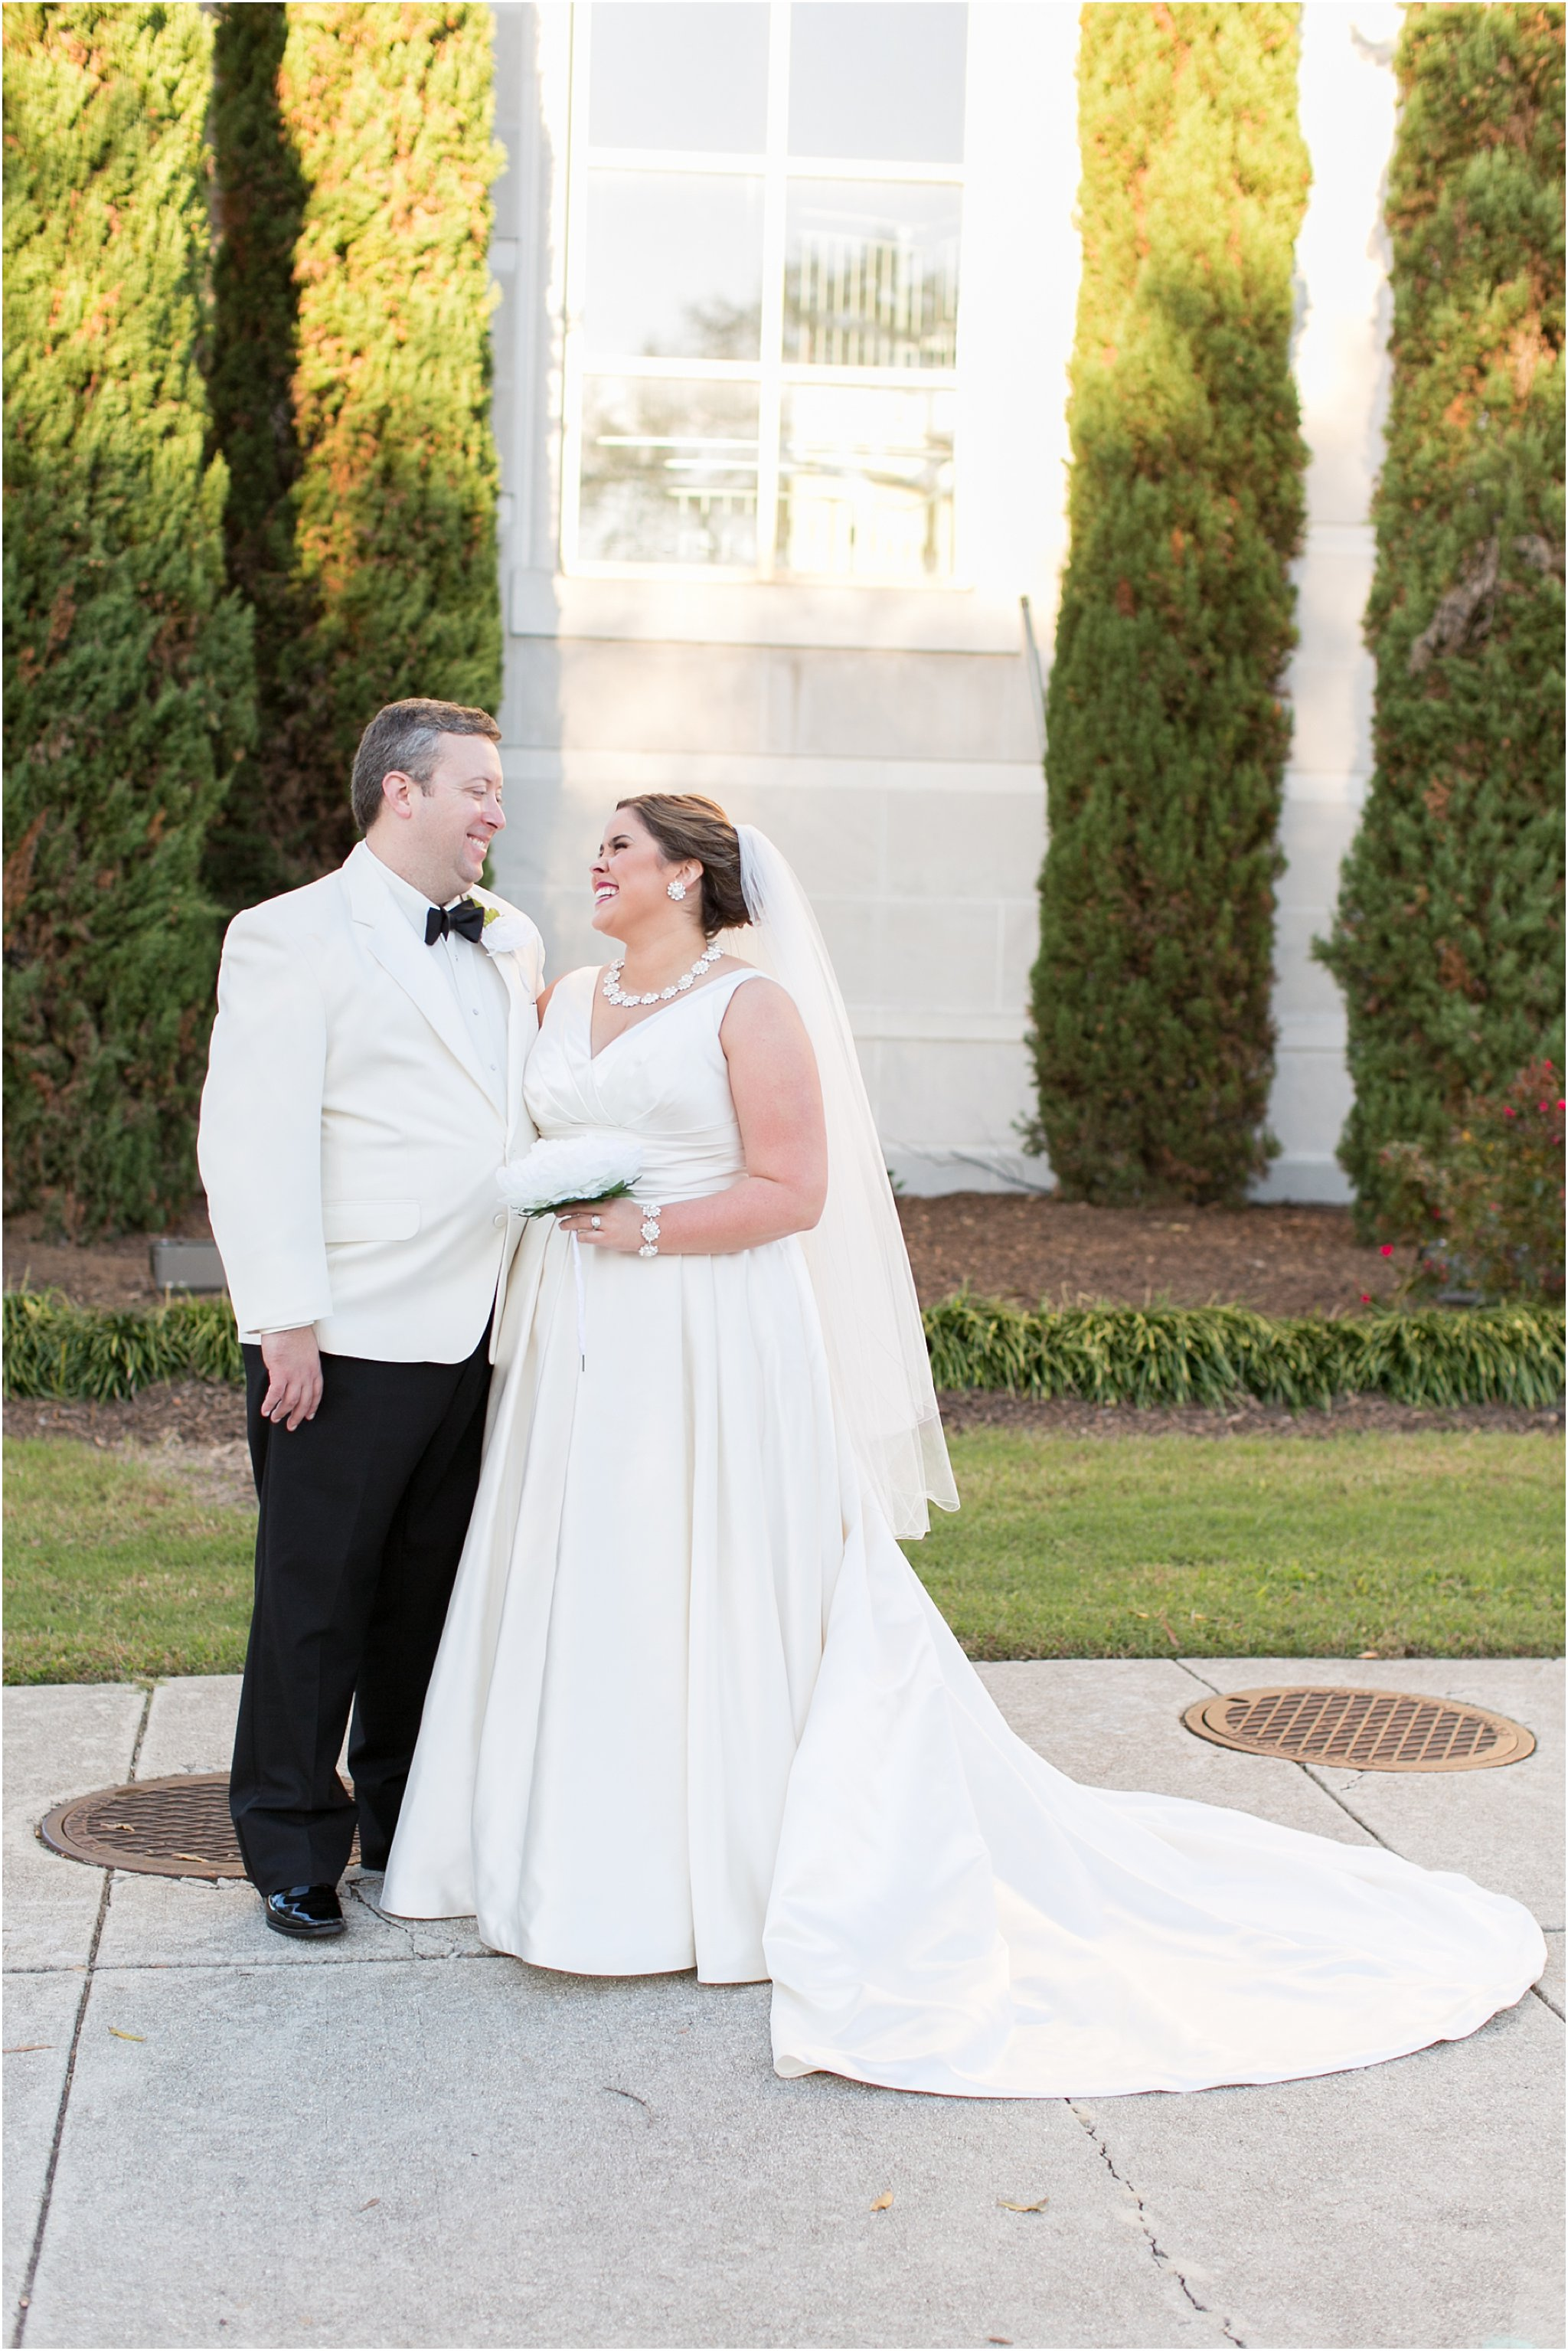 va_jessica_ryan_photography_virginia_wedding_norfolk_harrison_opera_house_norfolk_arts_district_portraits_3806